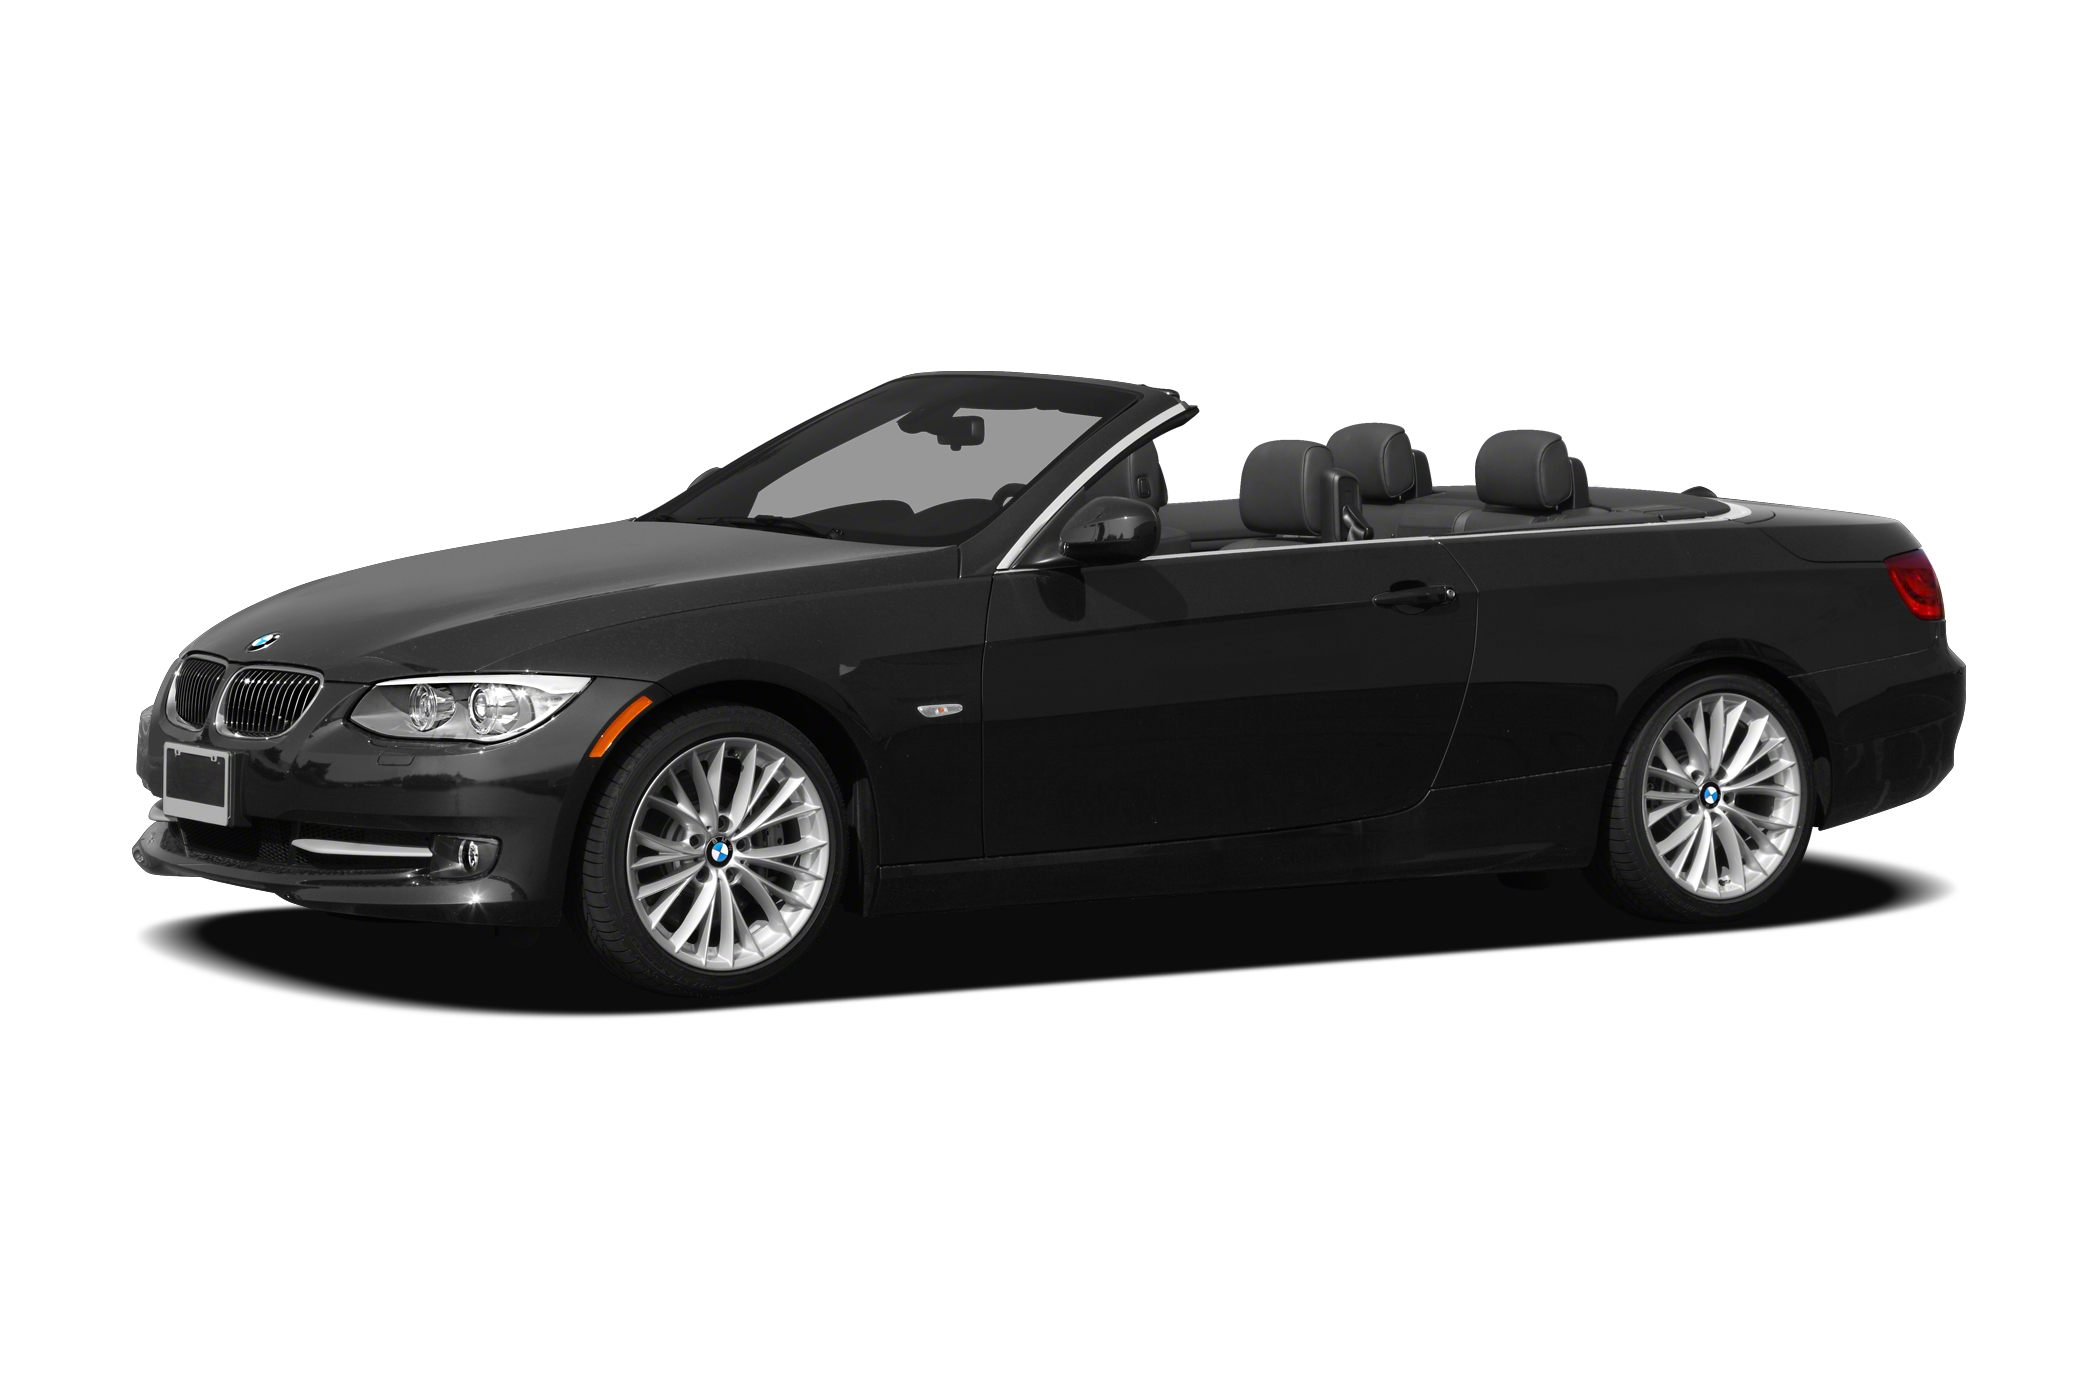 2012 BMW 3 Series 328i Voted 1 Preowned Dealer in Metro Boston 2013  2014 and Voted Best Deals